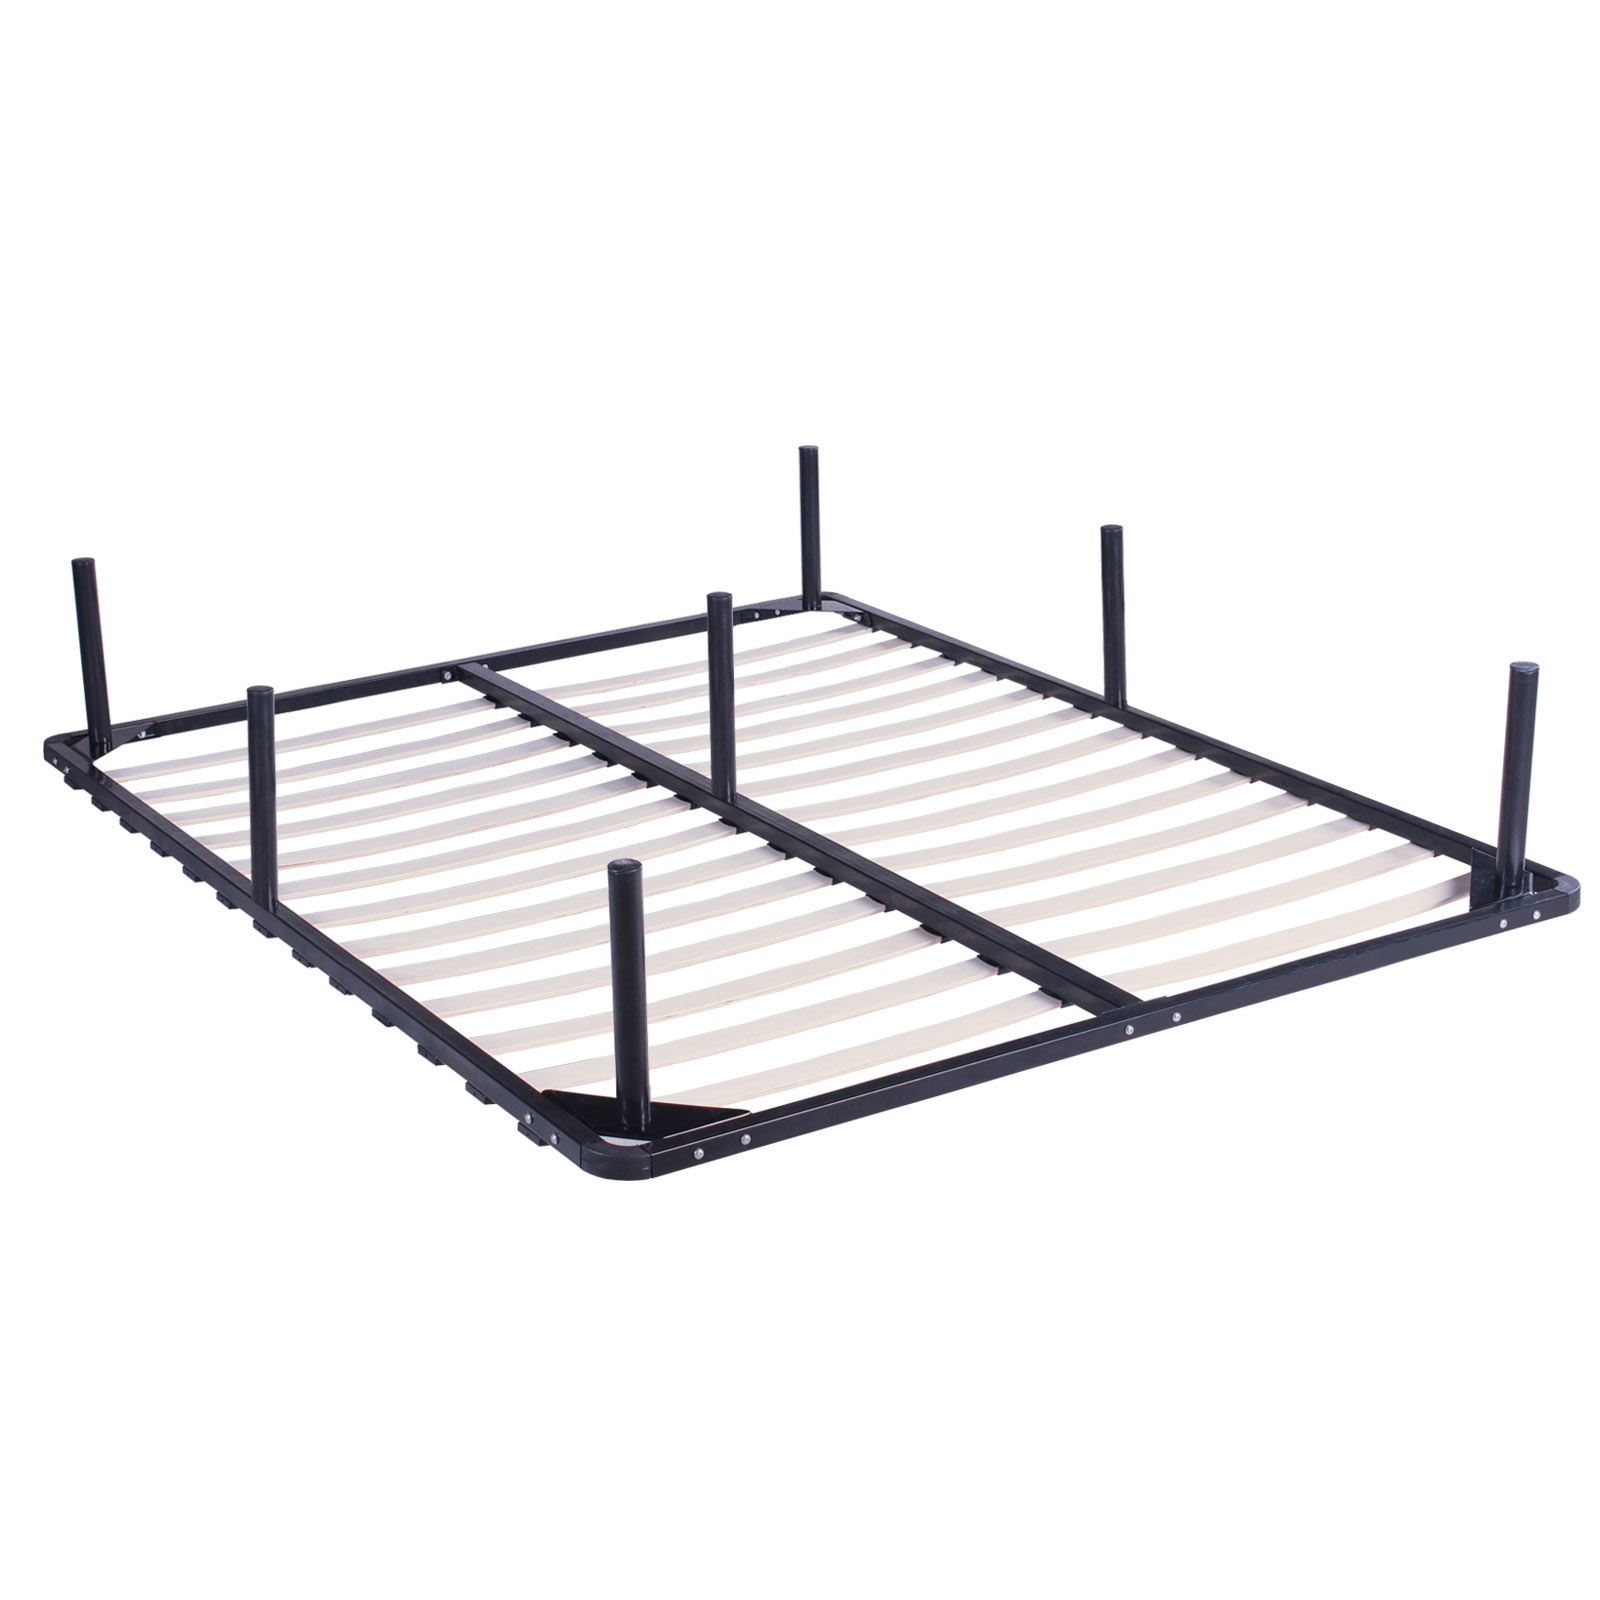 KING SIZE WOOD SLATS METAL BED FRAME PLATFORM FOUNDATION